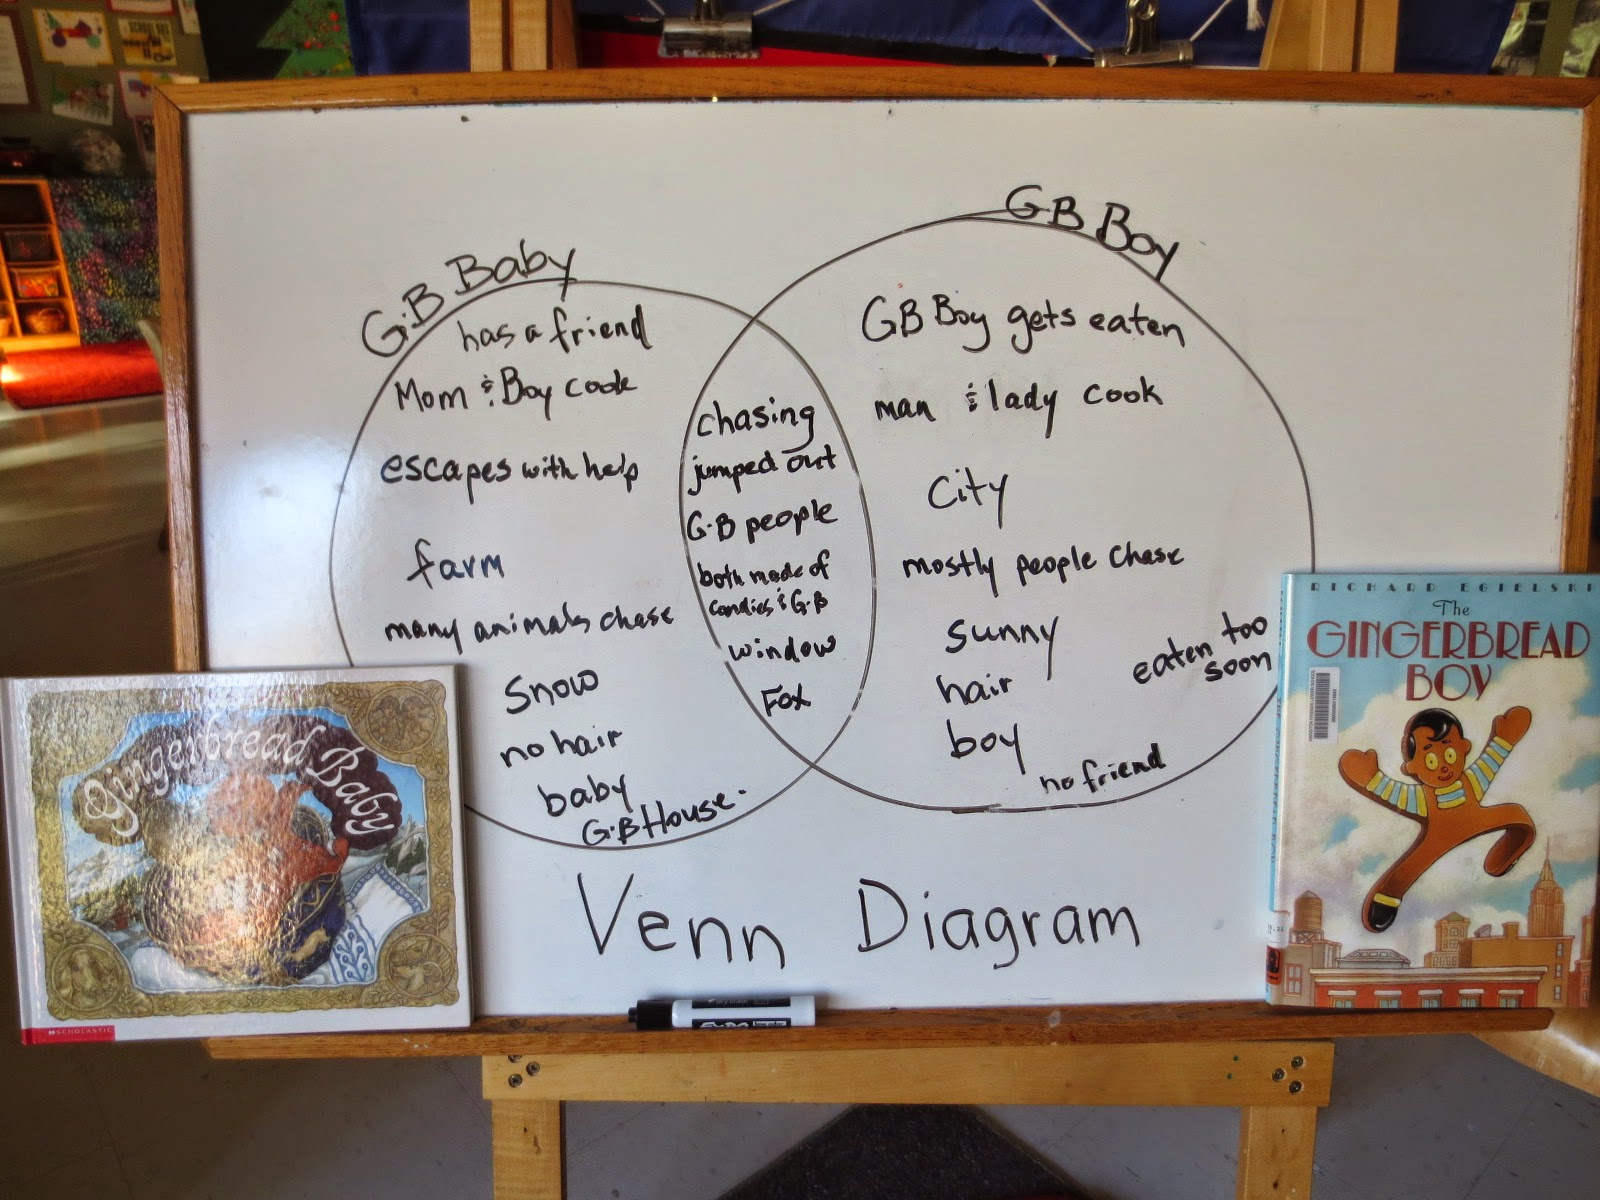 abington friends lower school news and notes venn diagrams in